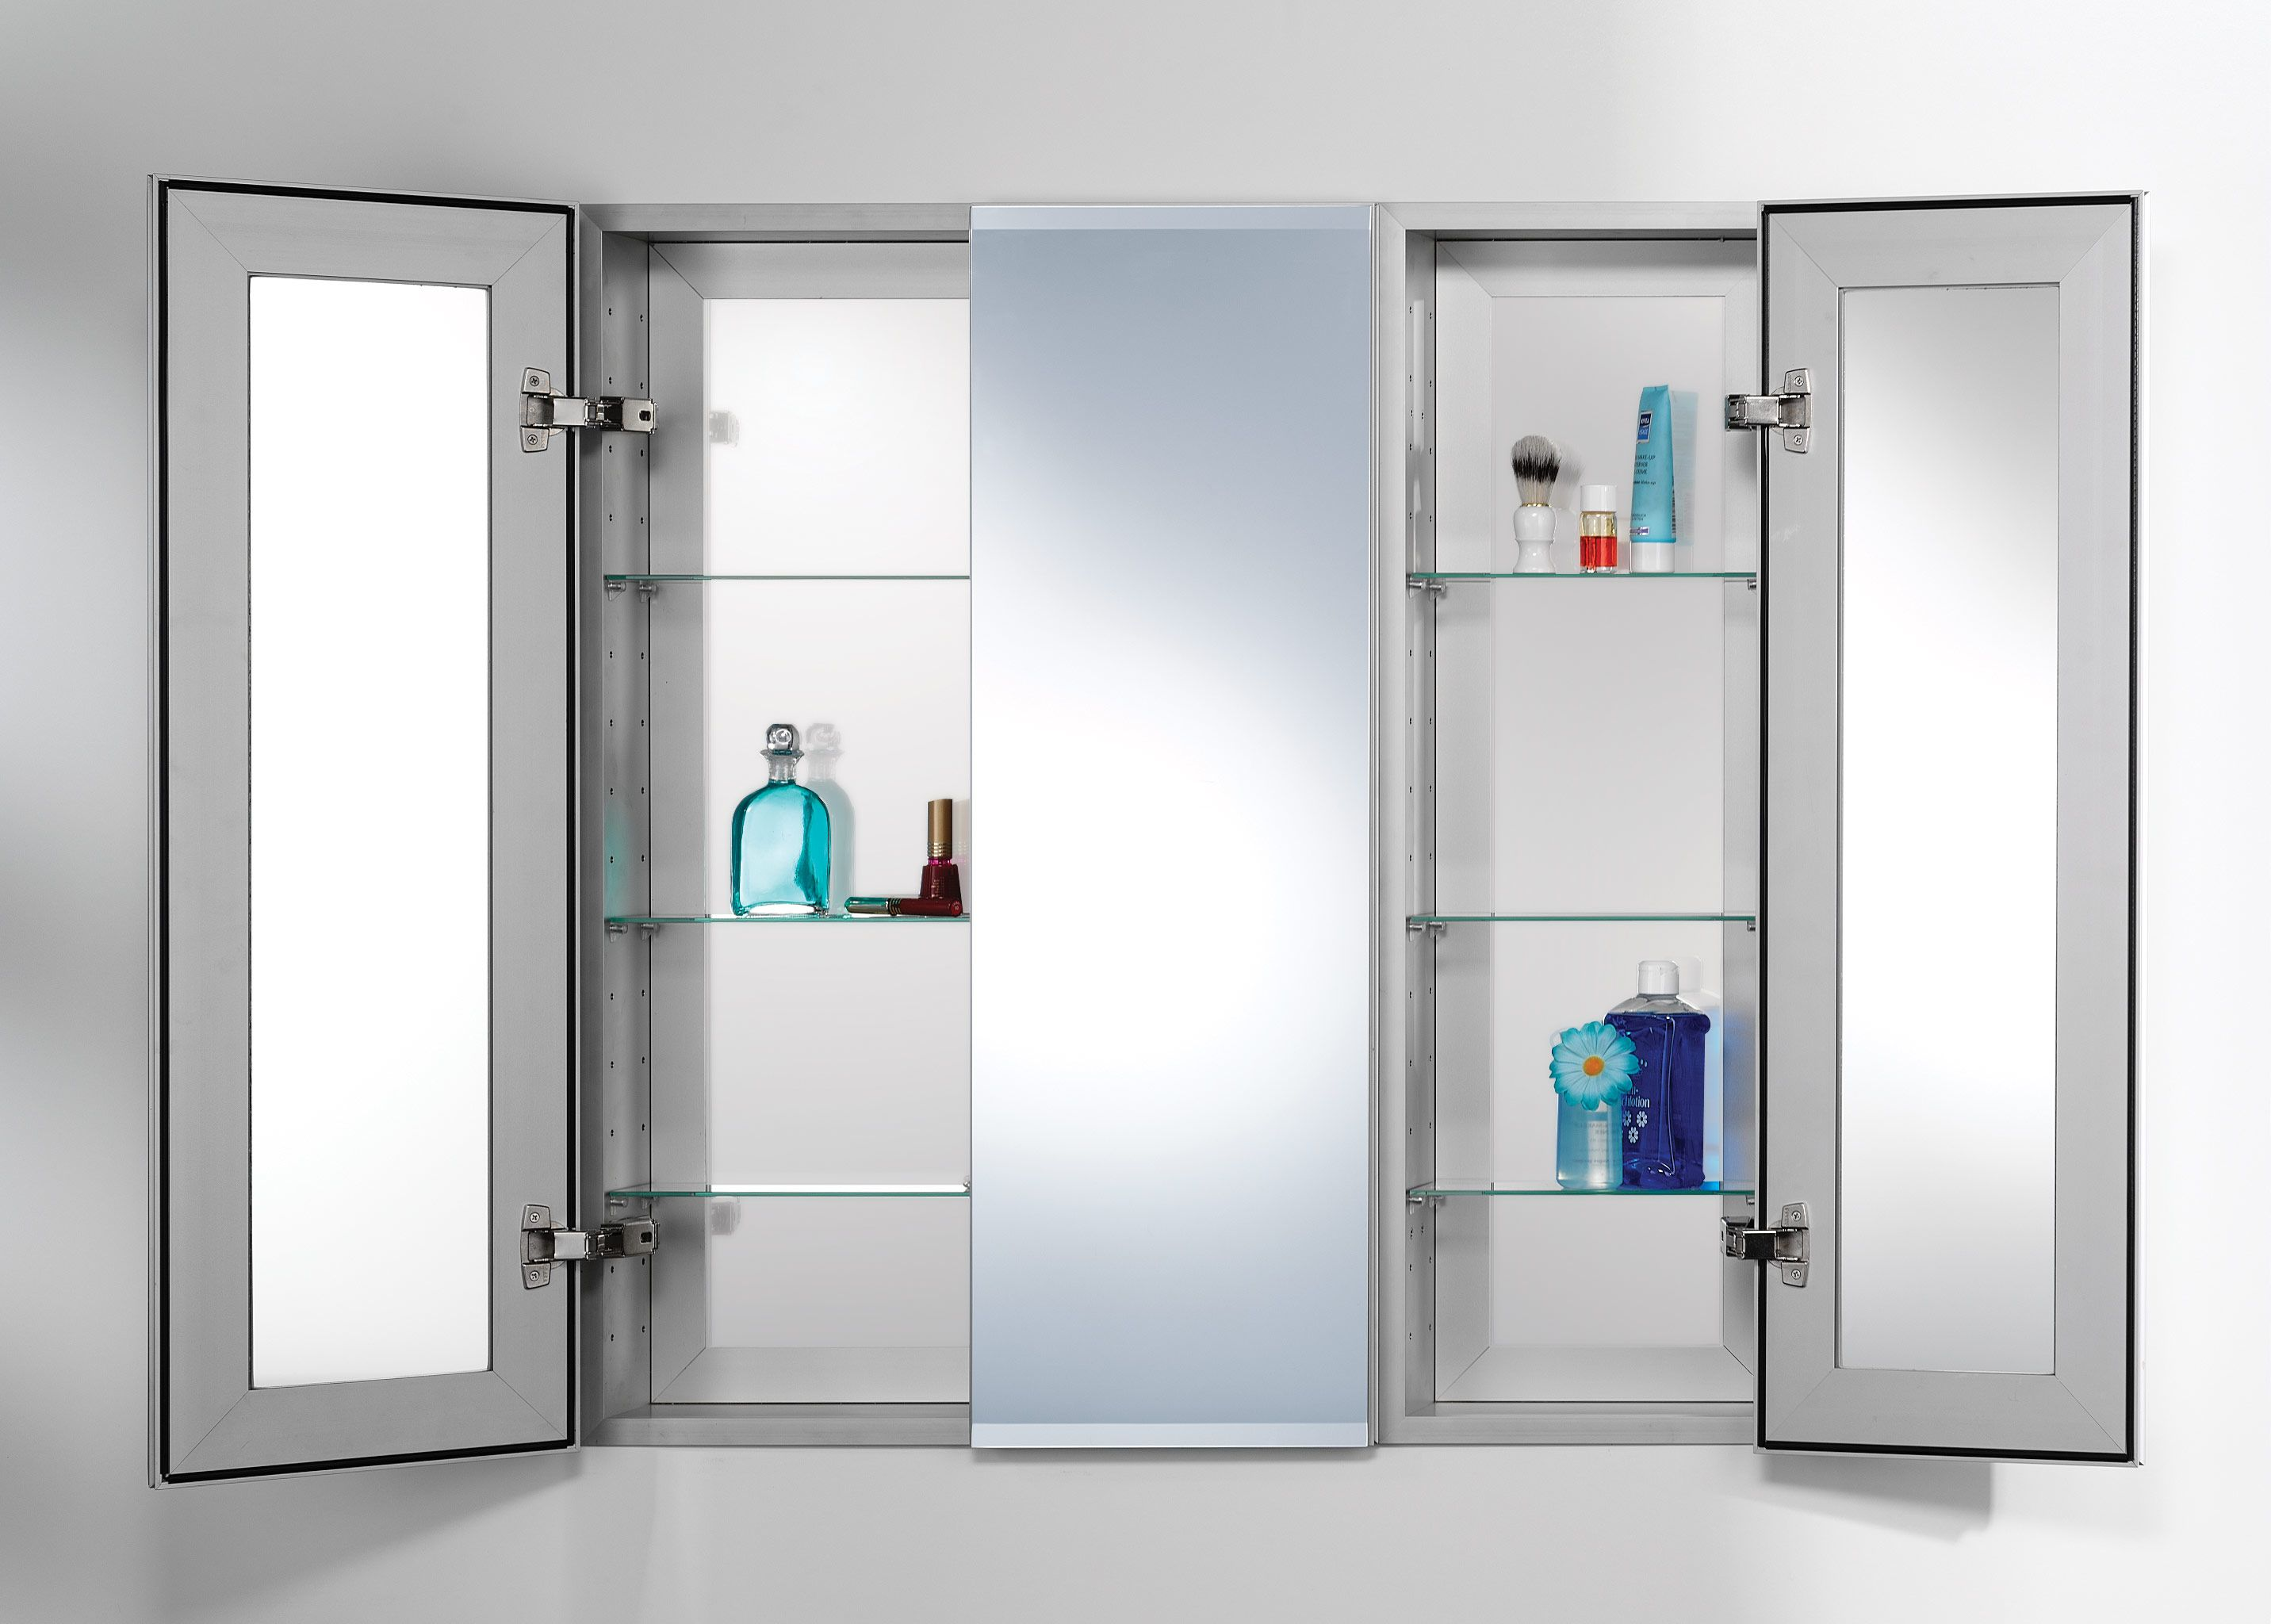 Mirrored Medicine Cabinet Lowes Impressive Surprising Medicine Cabinets With Lights Lowes M Icin C Bin B H Inspiration